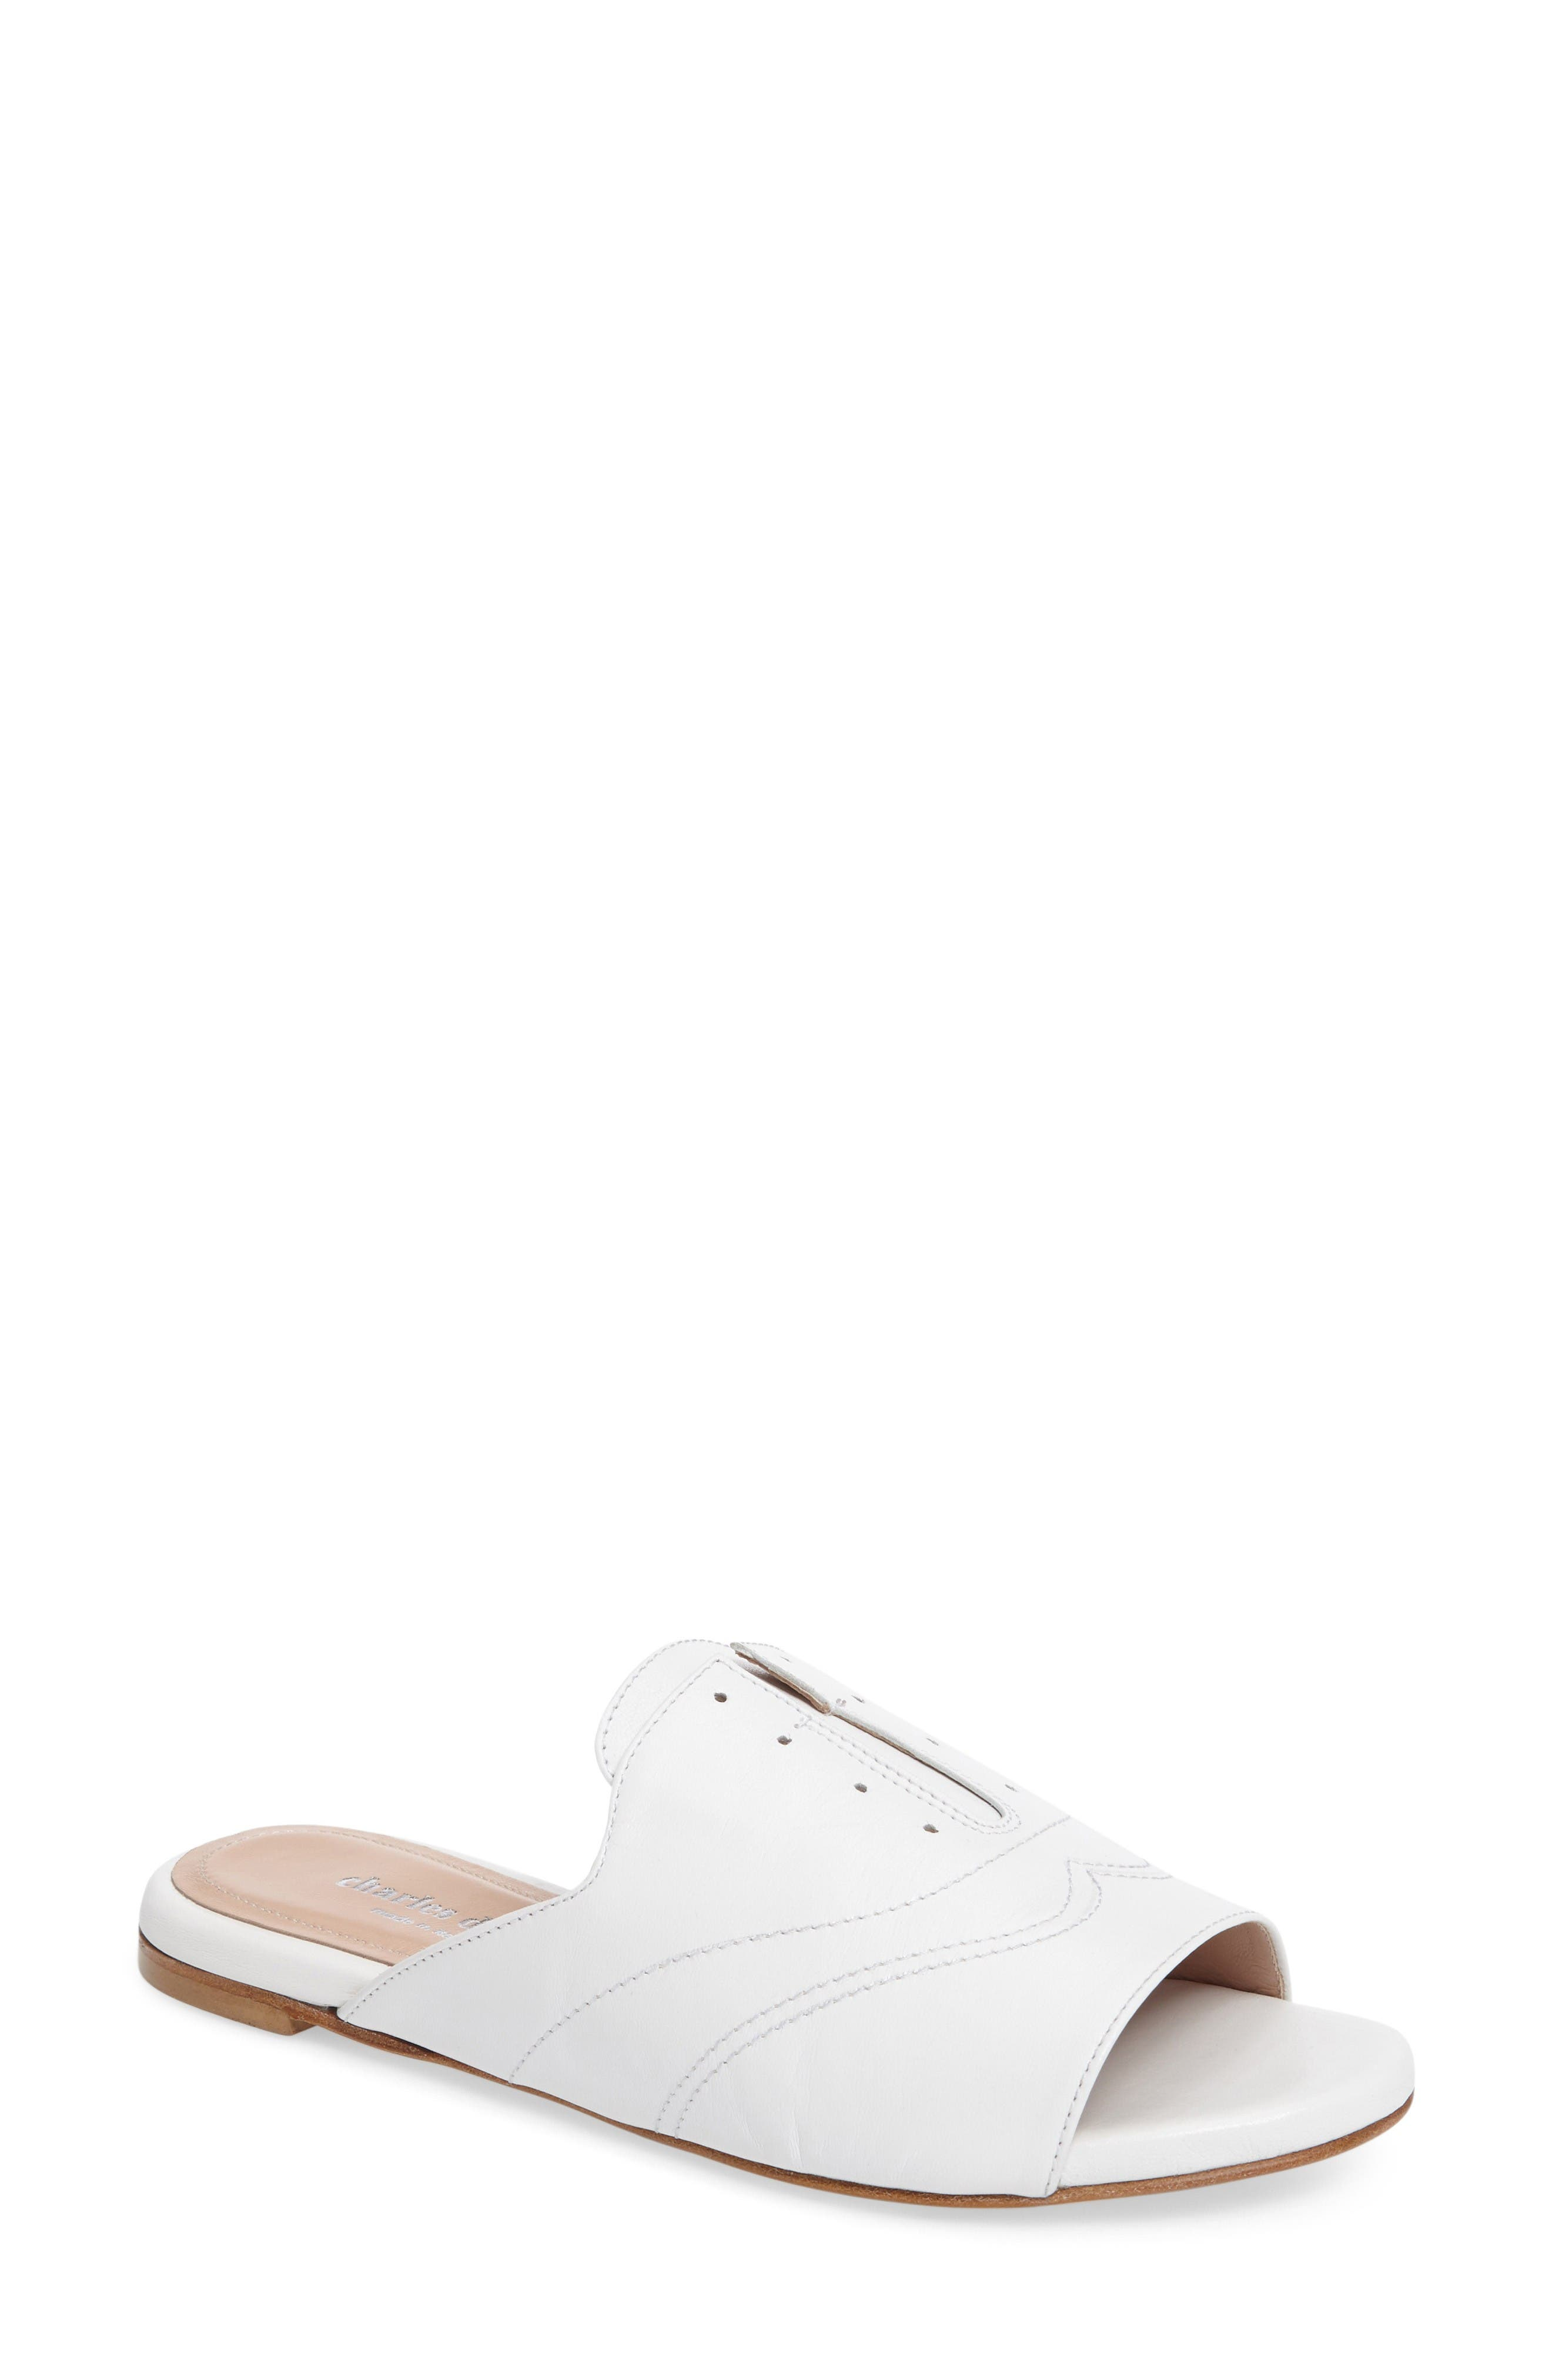 Smith Mule,                         Main,                         color, White Leather